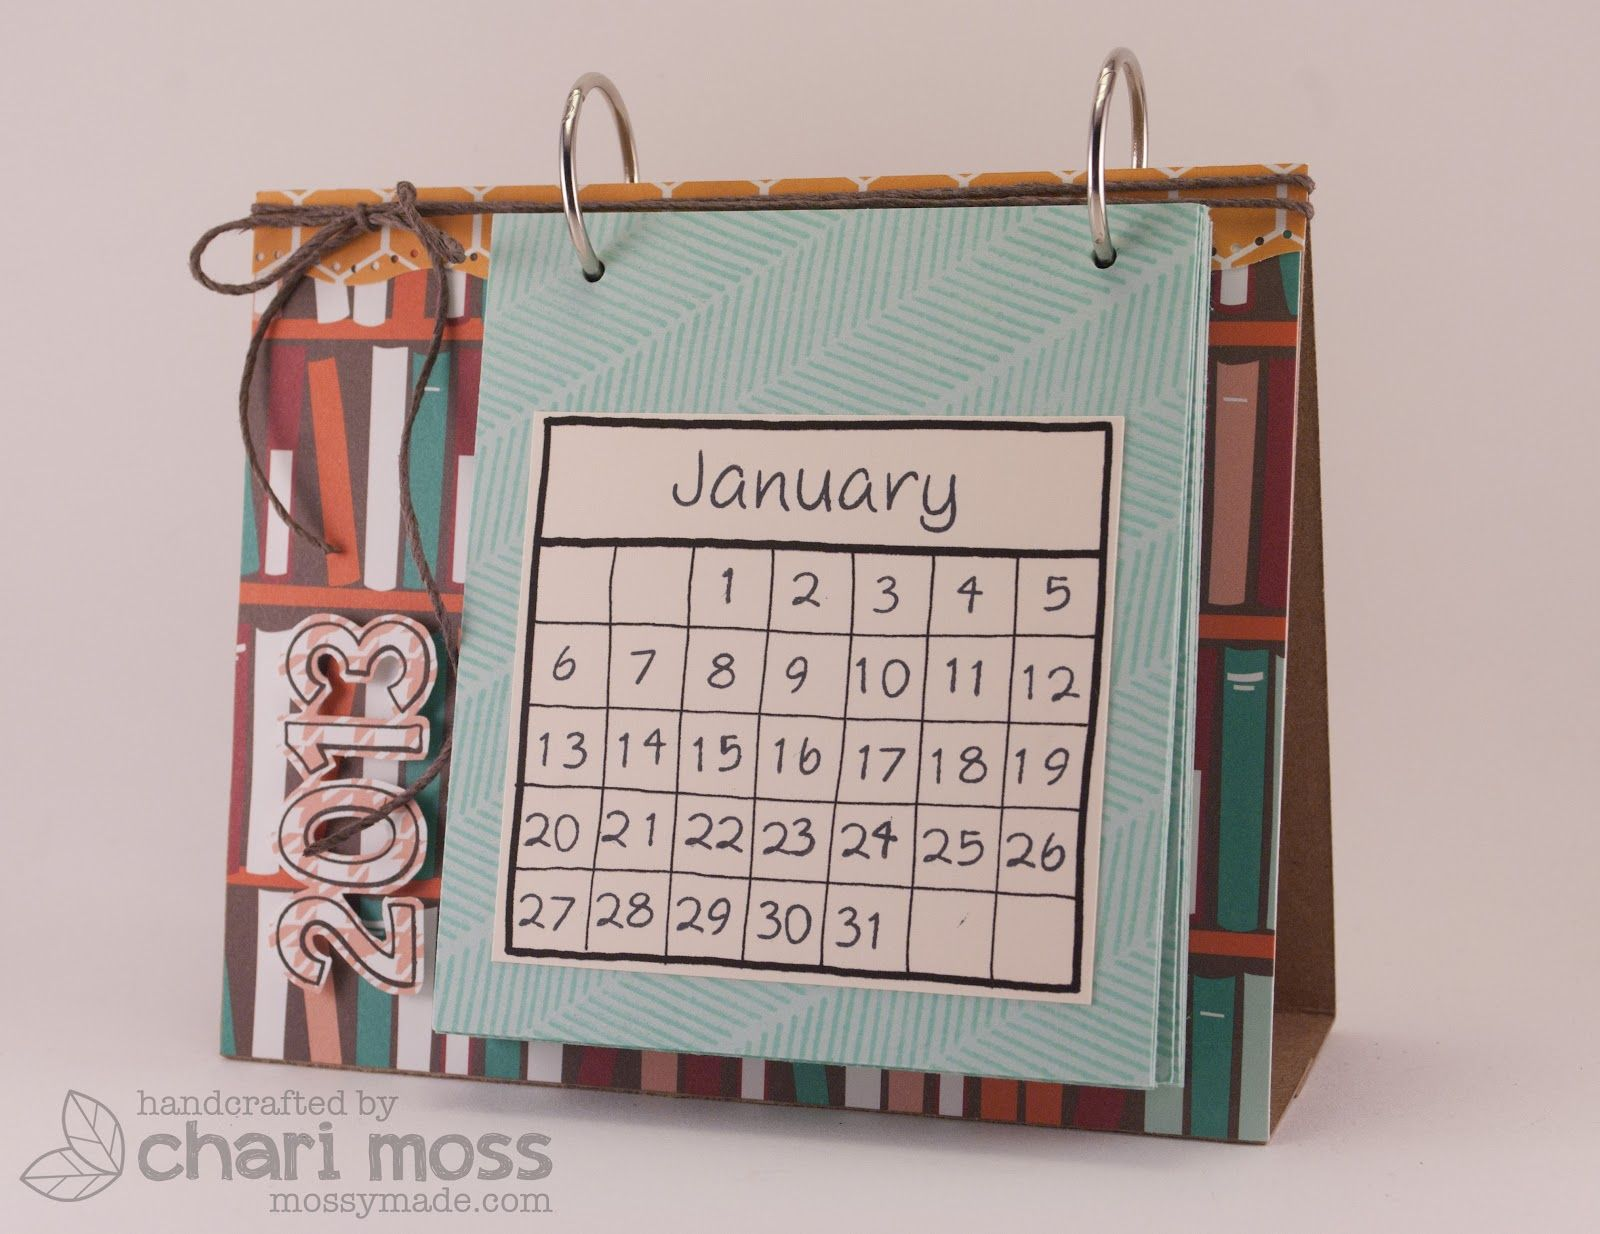 Diy Calendar Binding : The lawn fawn clippings video desk top